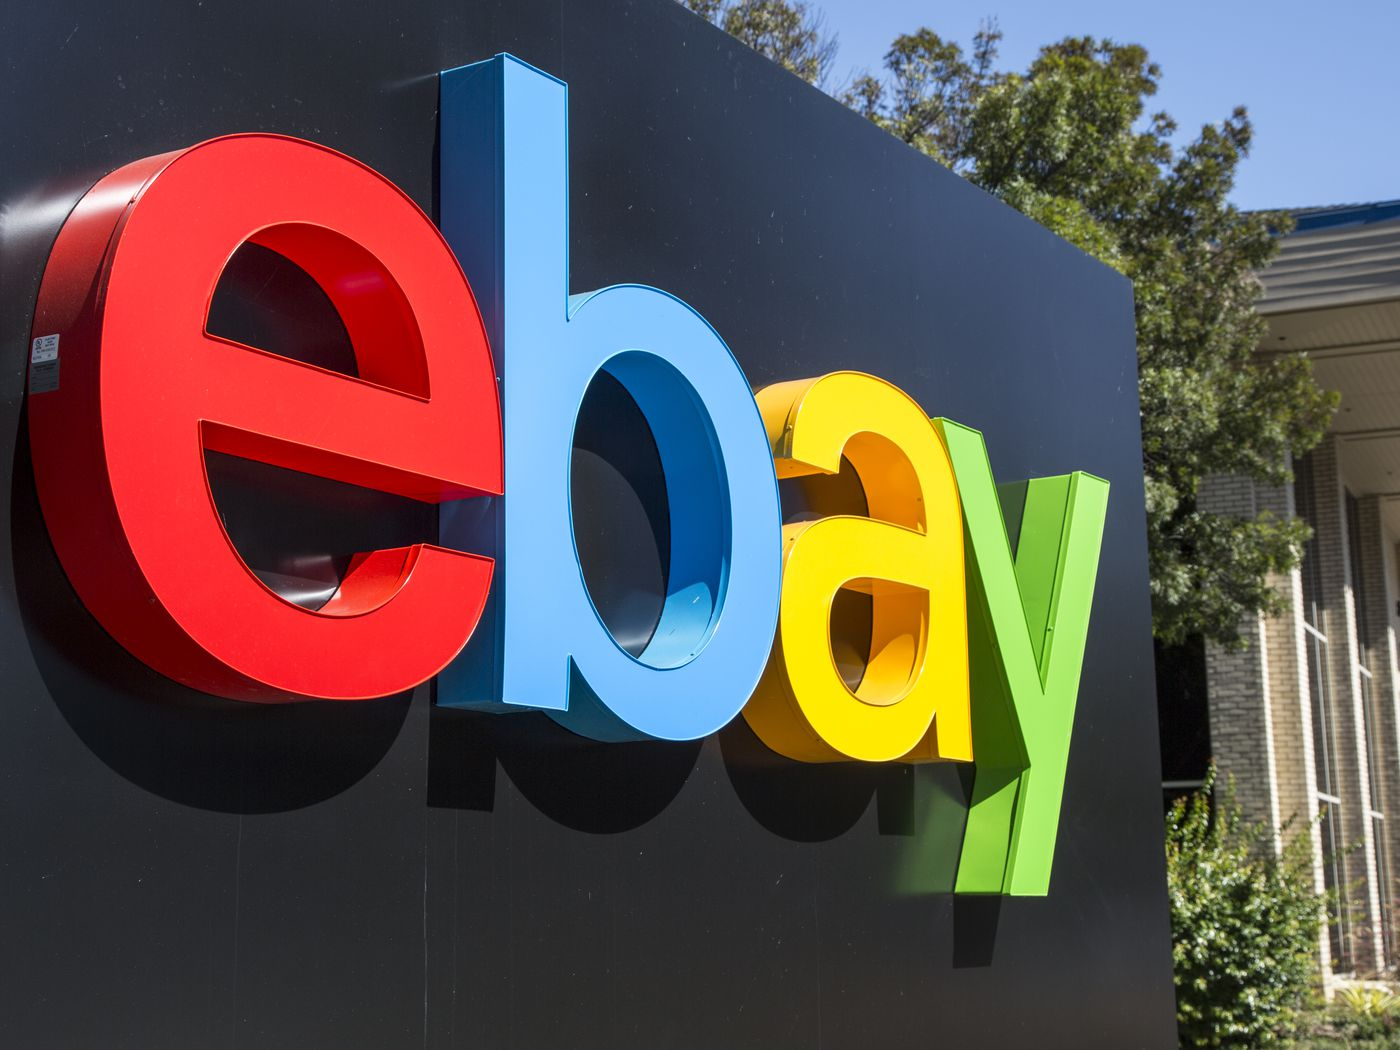 Ebay And Spring Are Teaming Up To Sell Luxury Fashion Racked